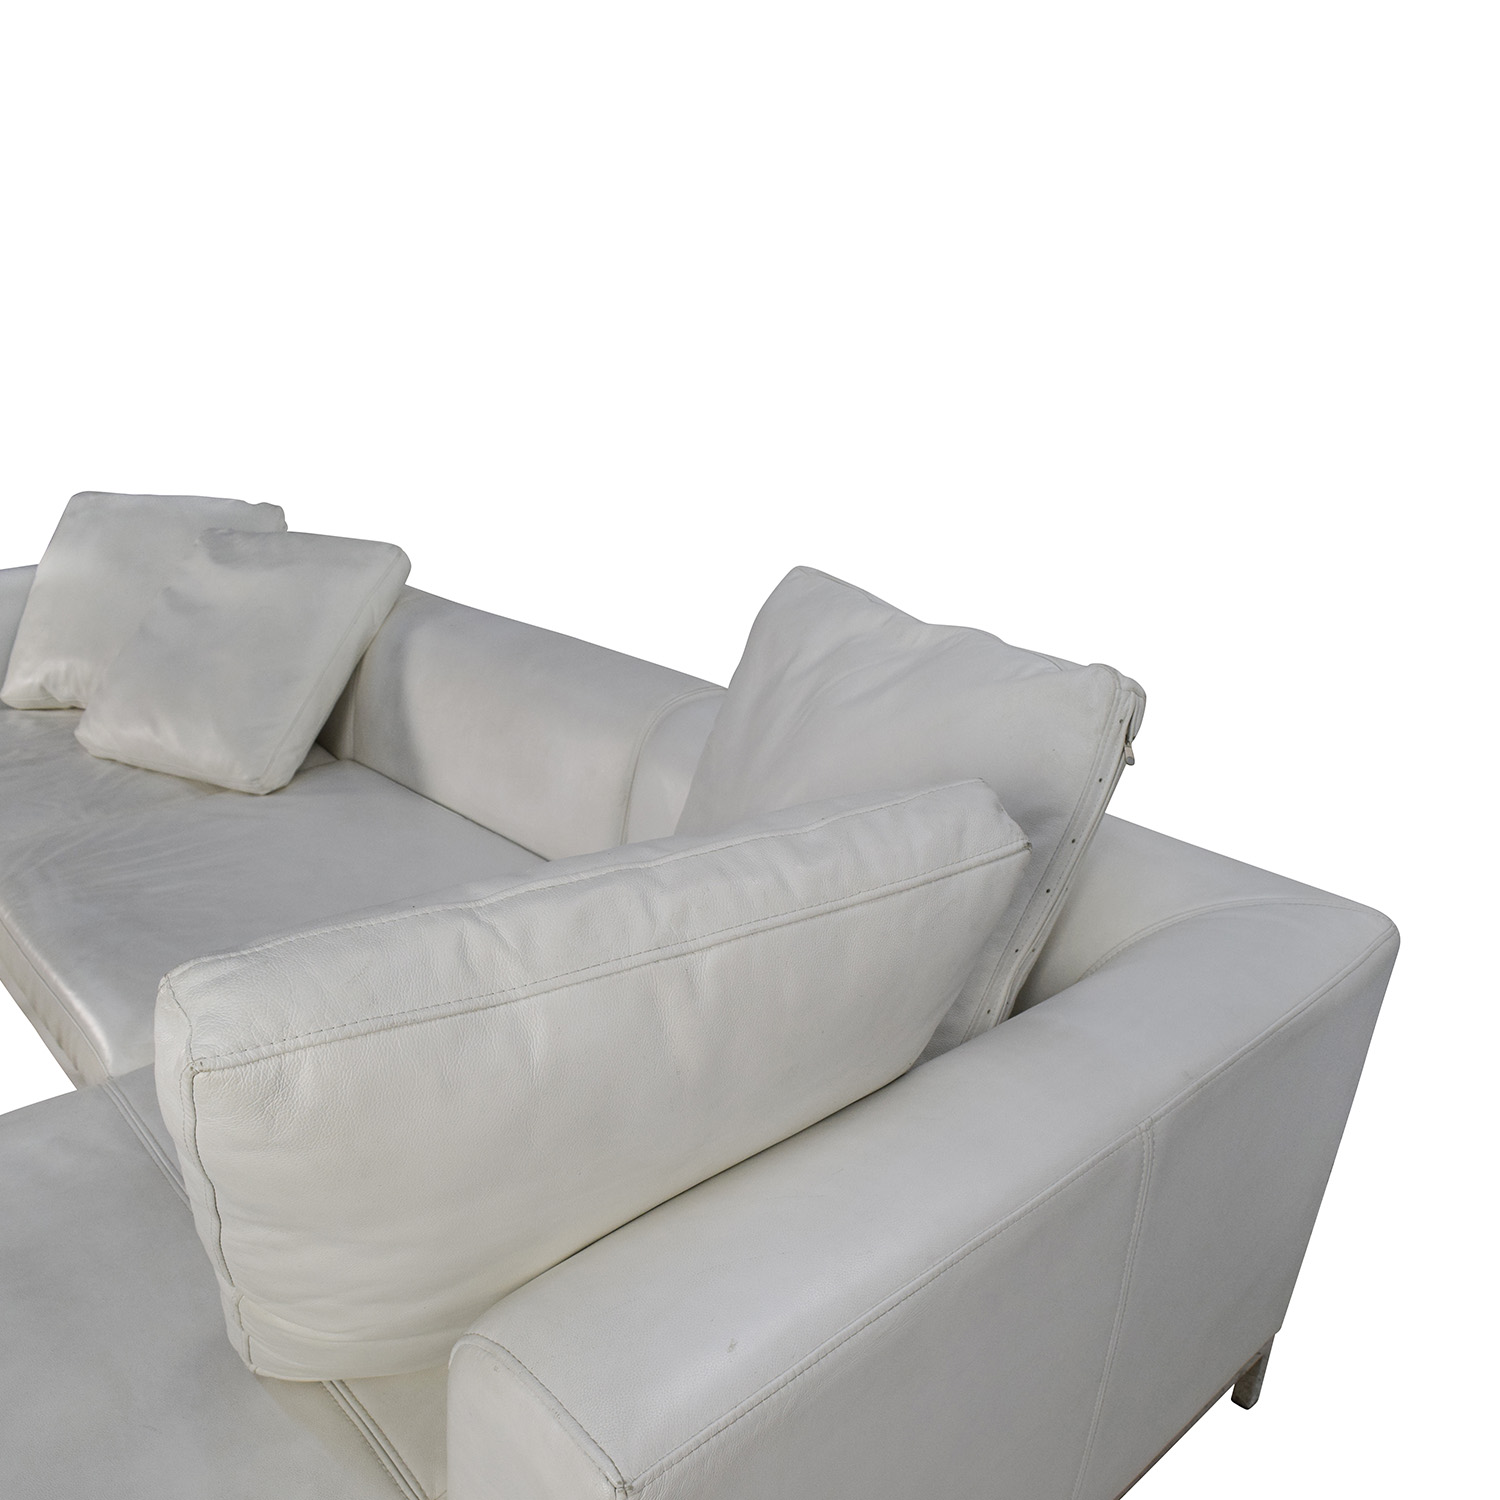 White Leather Sectional Sofa: White Leather Sectional Couch / Sofas